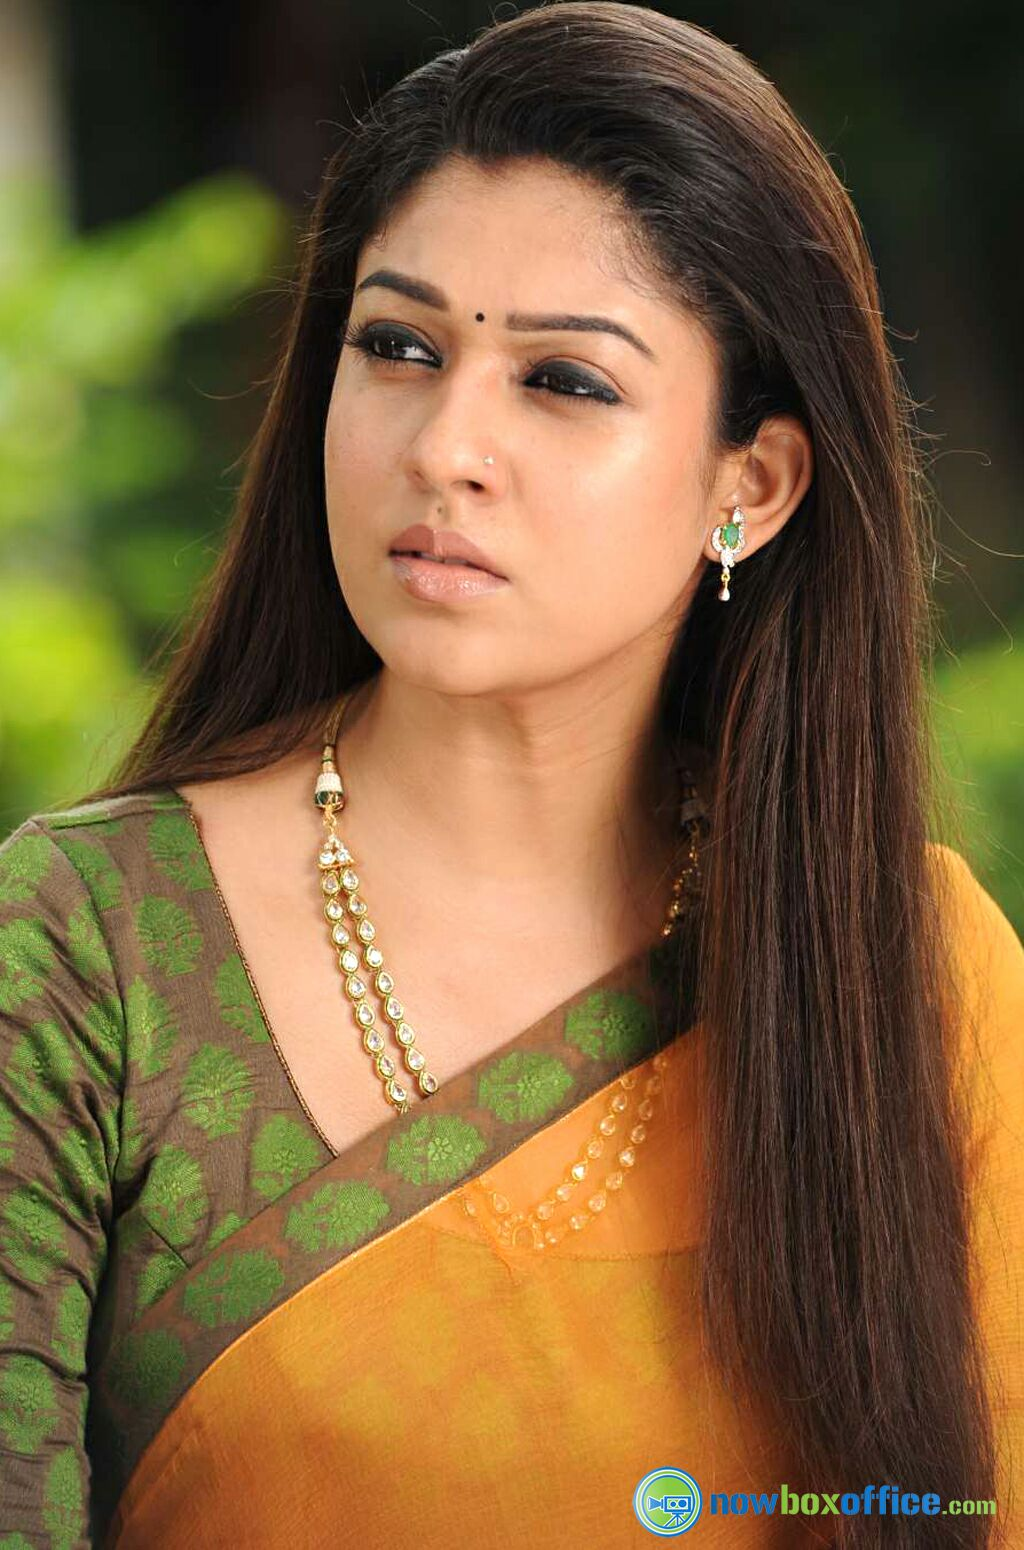 Nayanthara 7jpg Hd Wallpapers Hd Images Hd Pictures